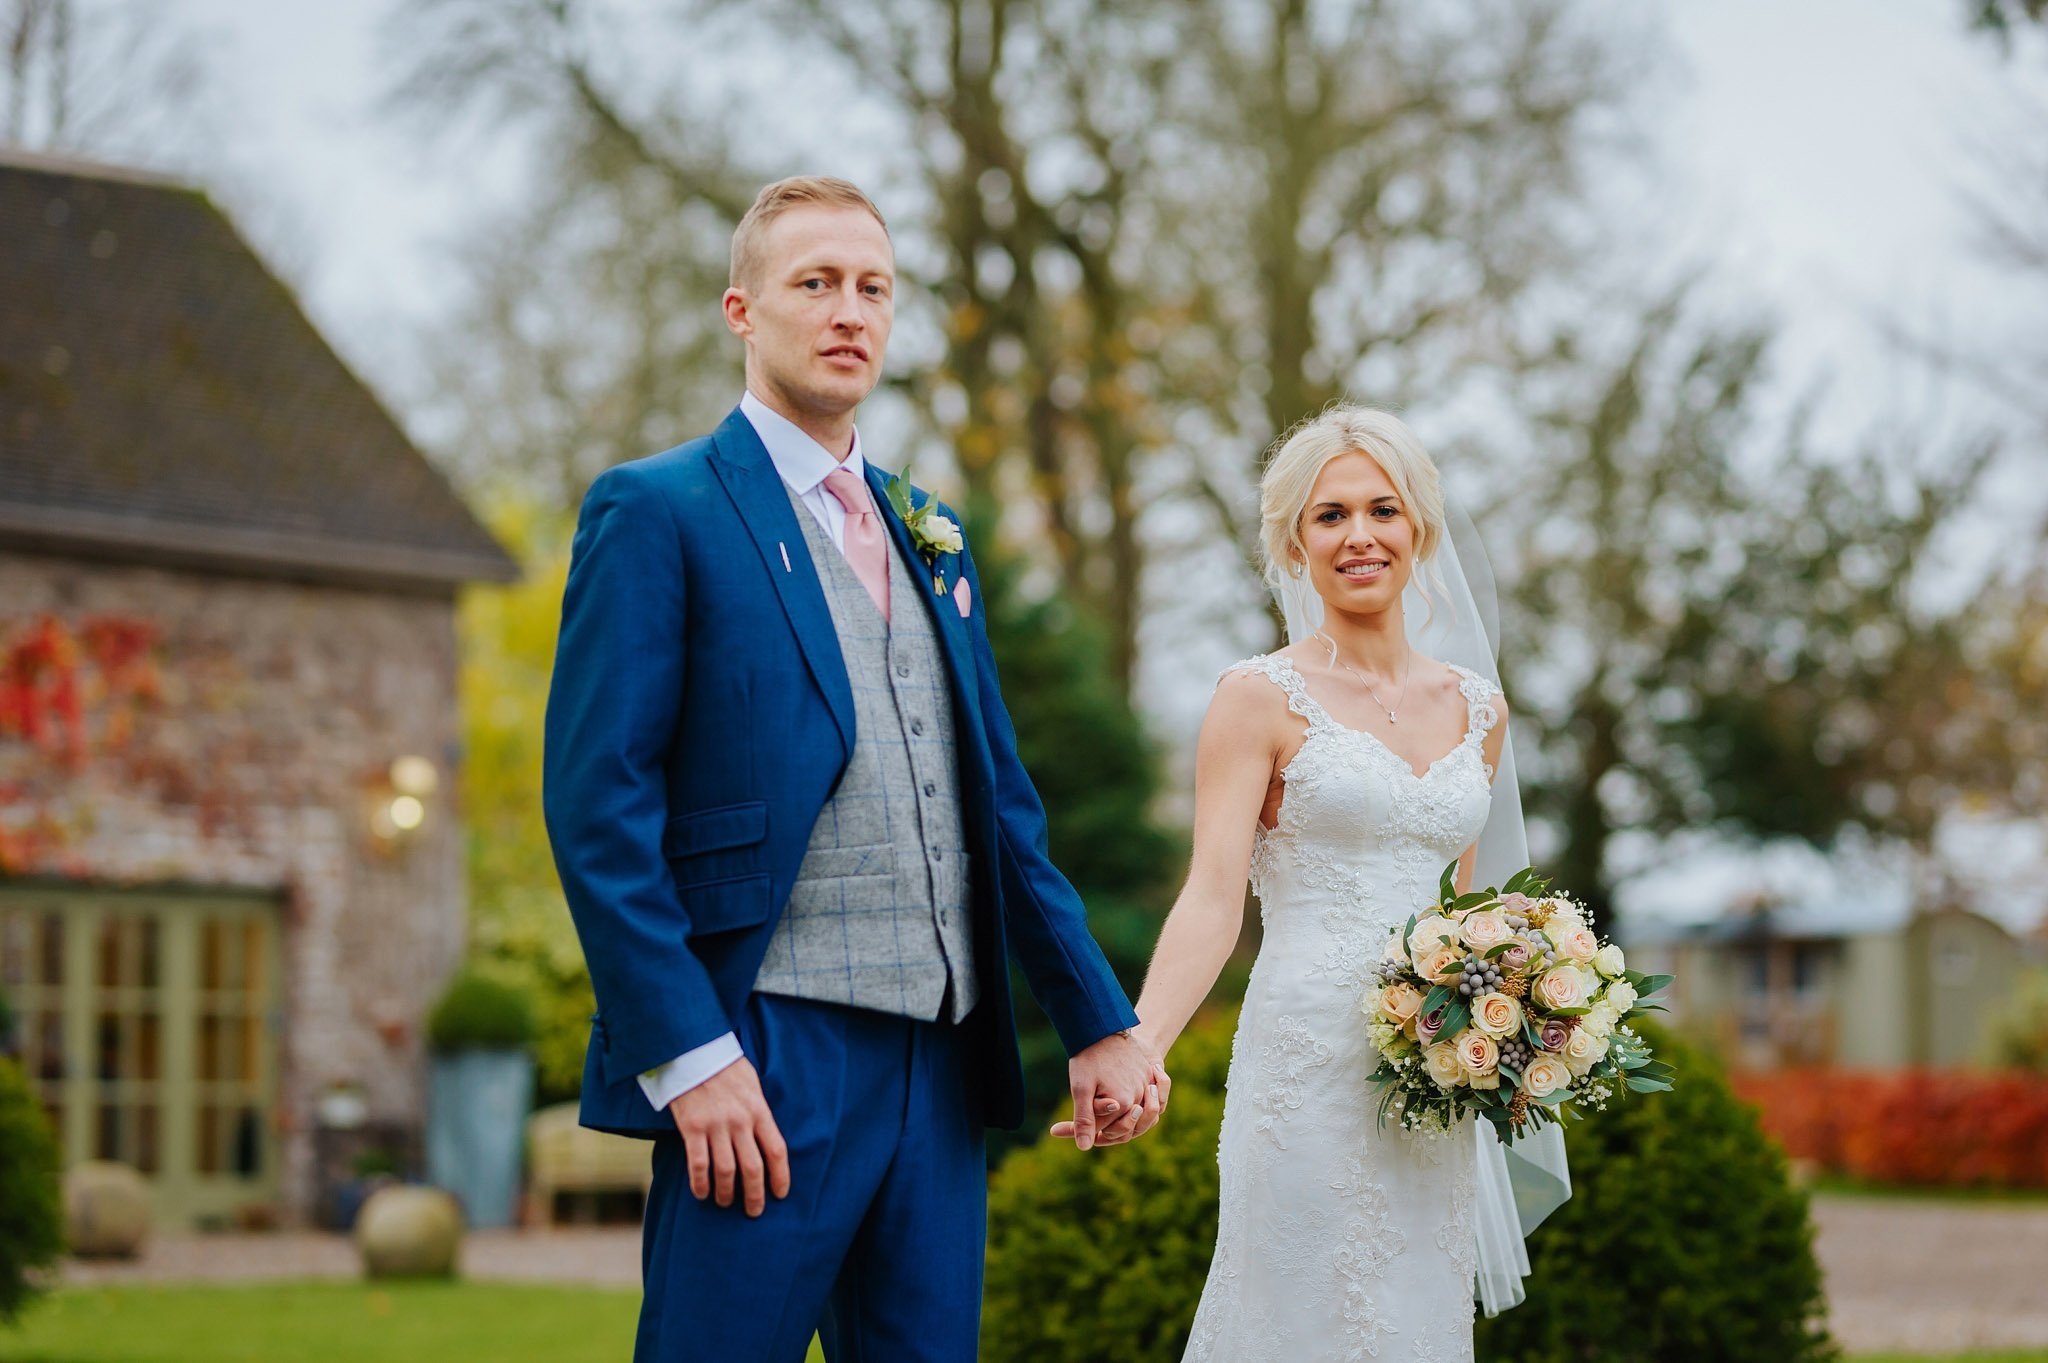 Lemore Manor wedding, Herefordshire - West Midlands | Sadie + Ken 57